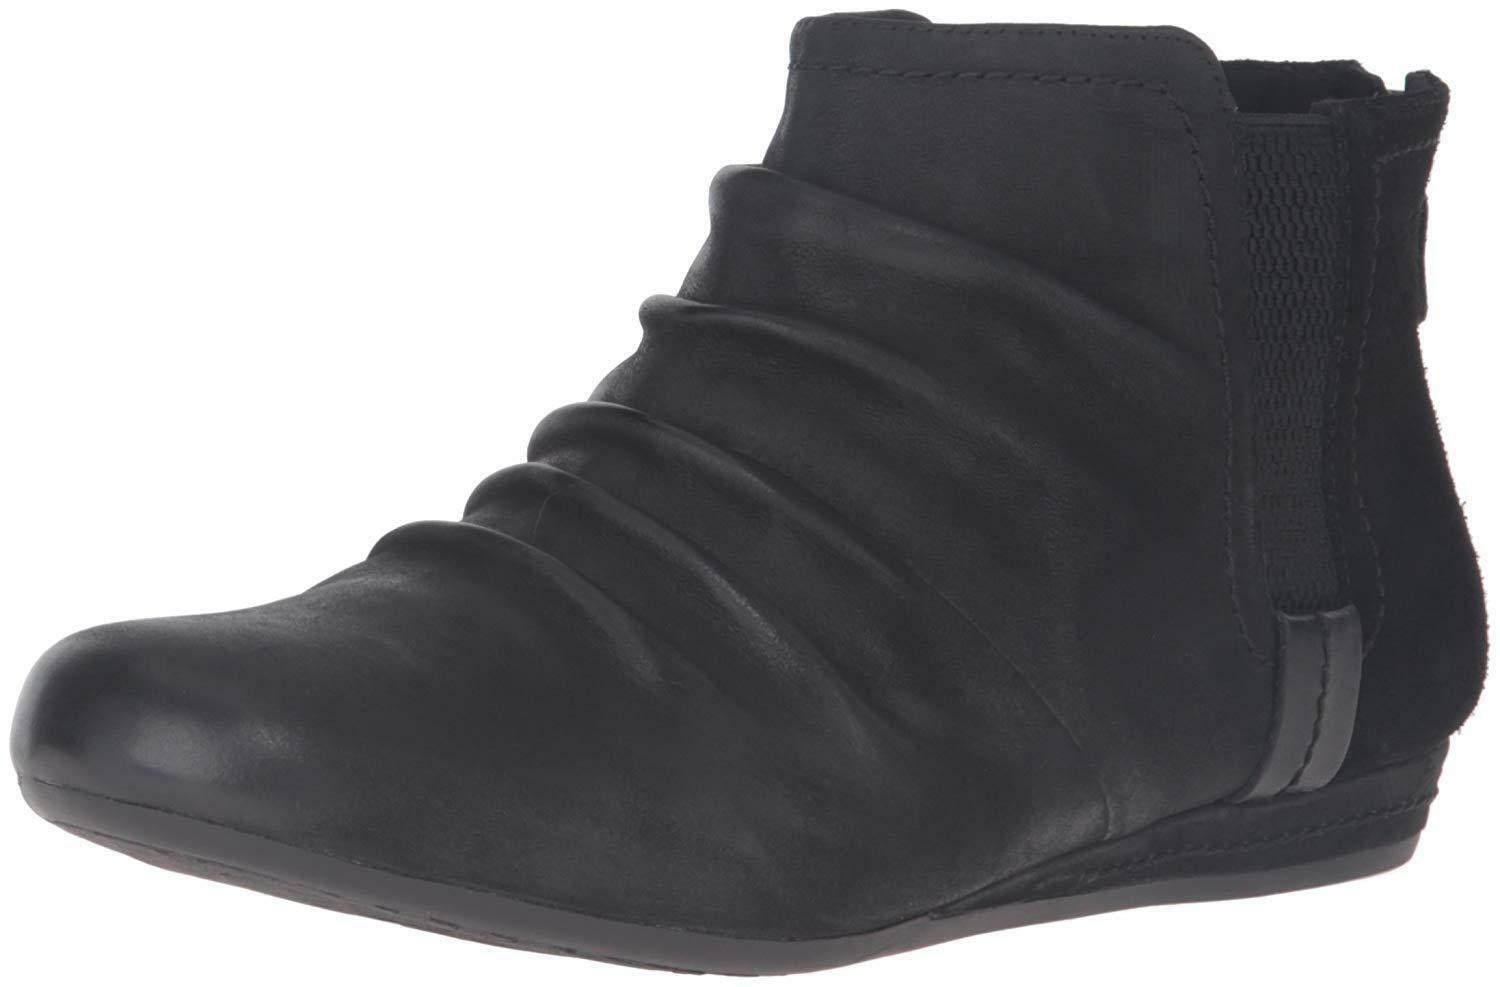 NEW Cobb Hill Rockport Women's Genevieve Leather Boot Black Size US 6.5W/